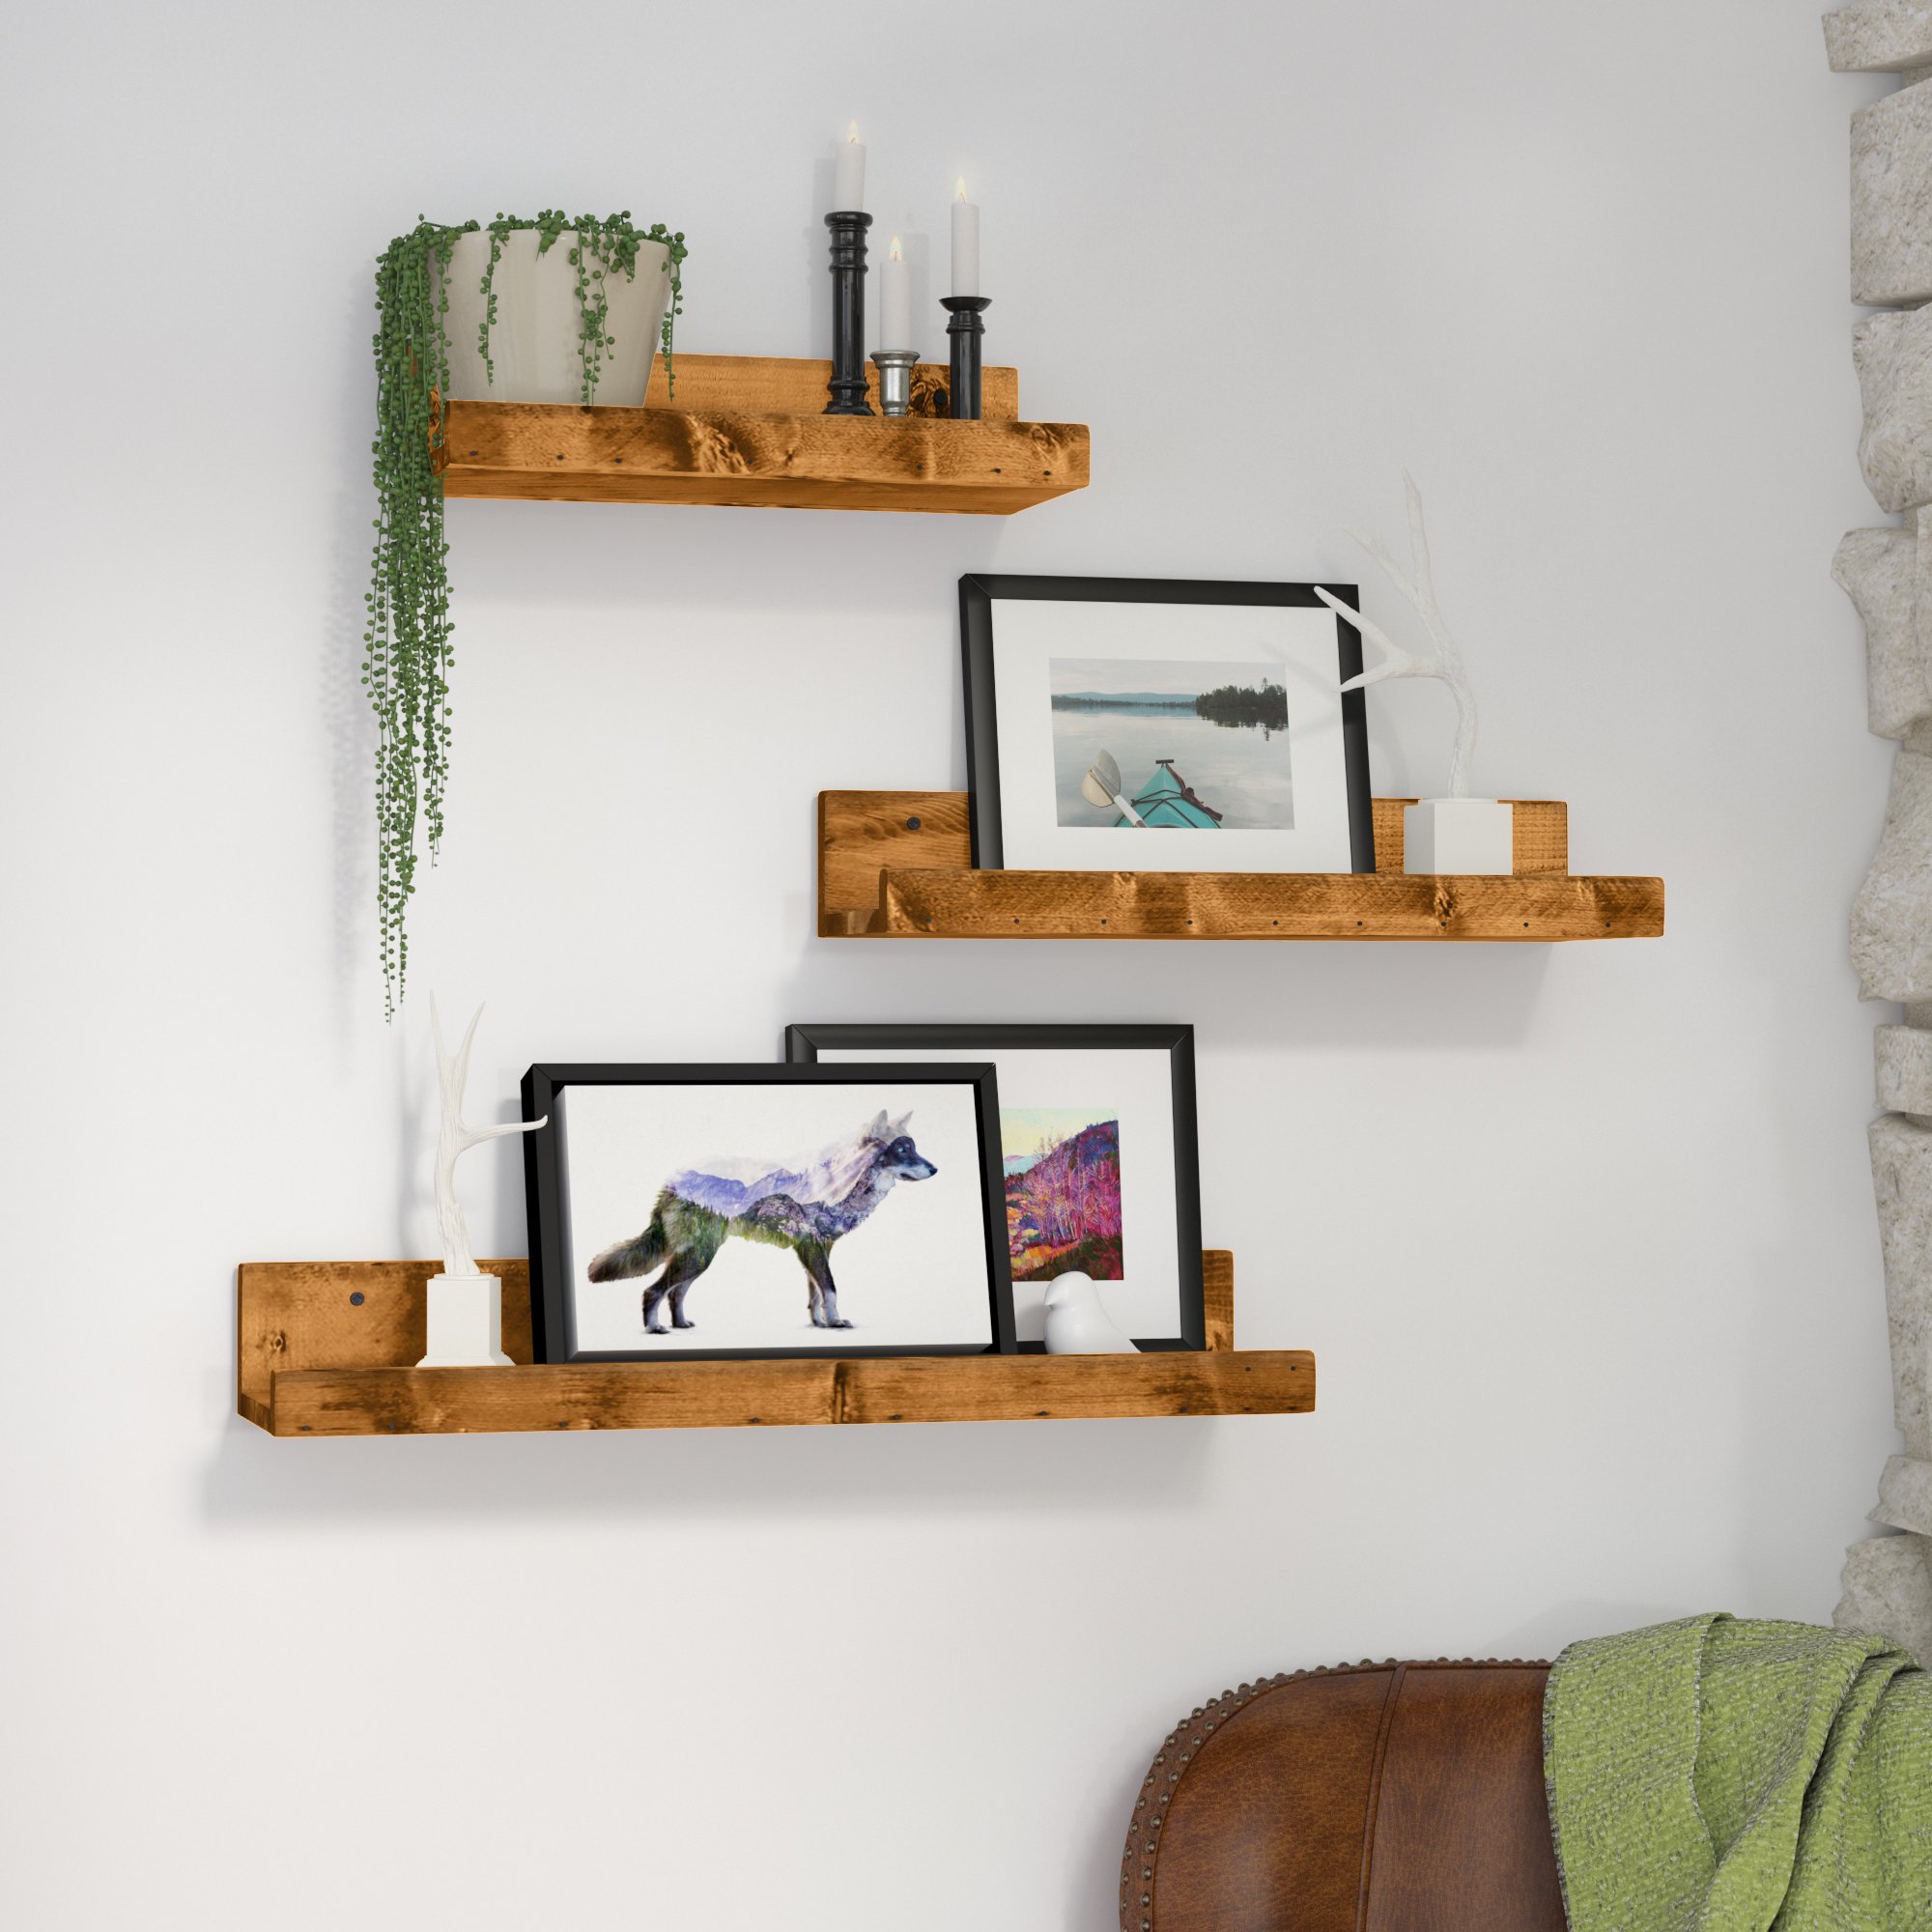 floating shelves storiestrending staggered kitchen under desk storage solid wood flooring underlay inch wall mounted coat rack free fireplace diy plans plum pipe shelf brackets